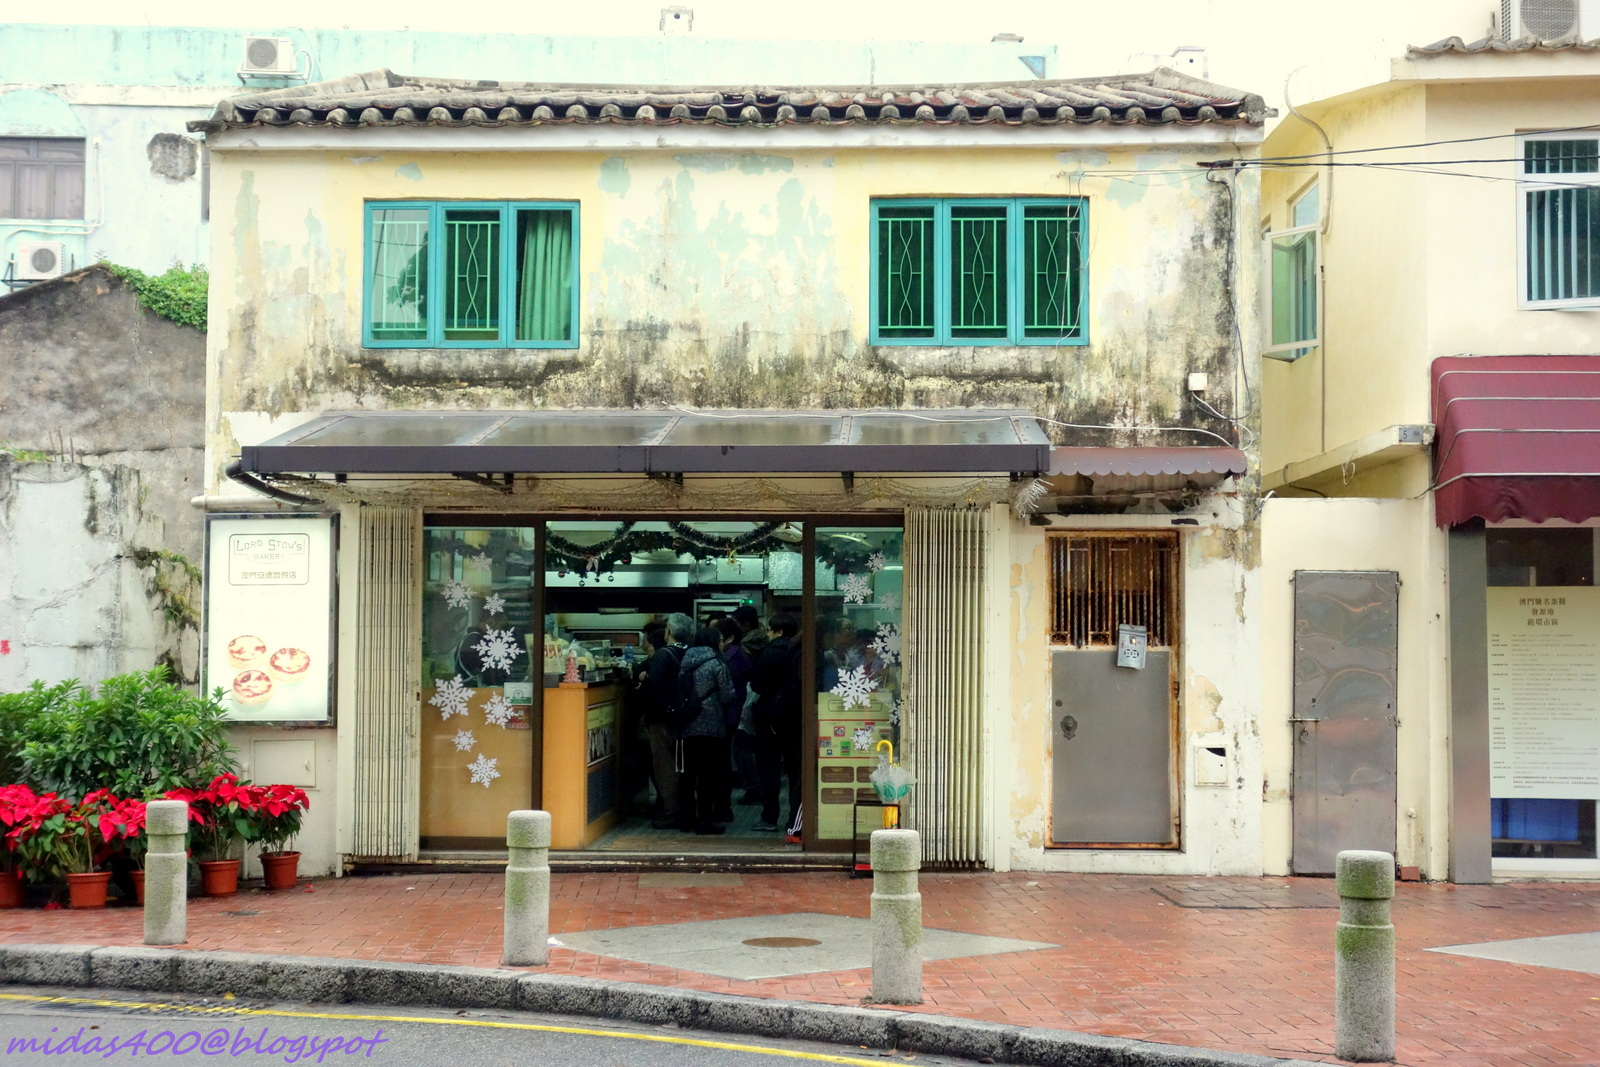 The original outlet in Coloane, Macao.